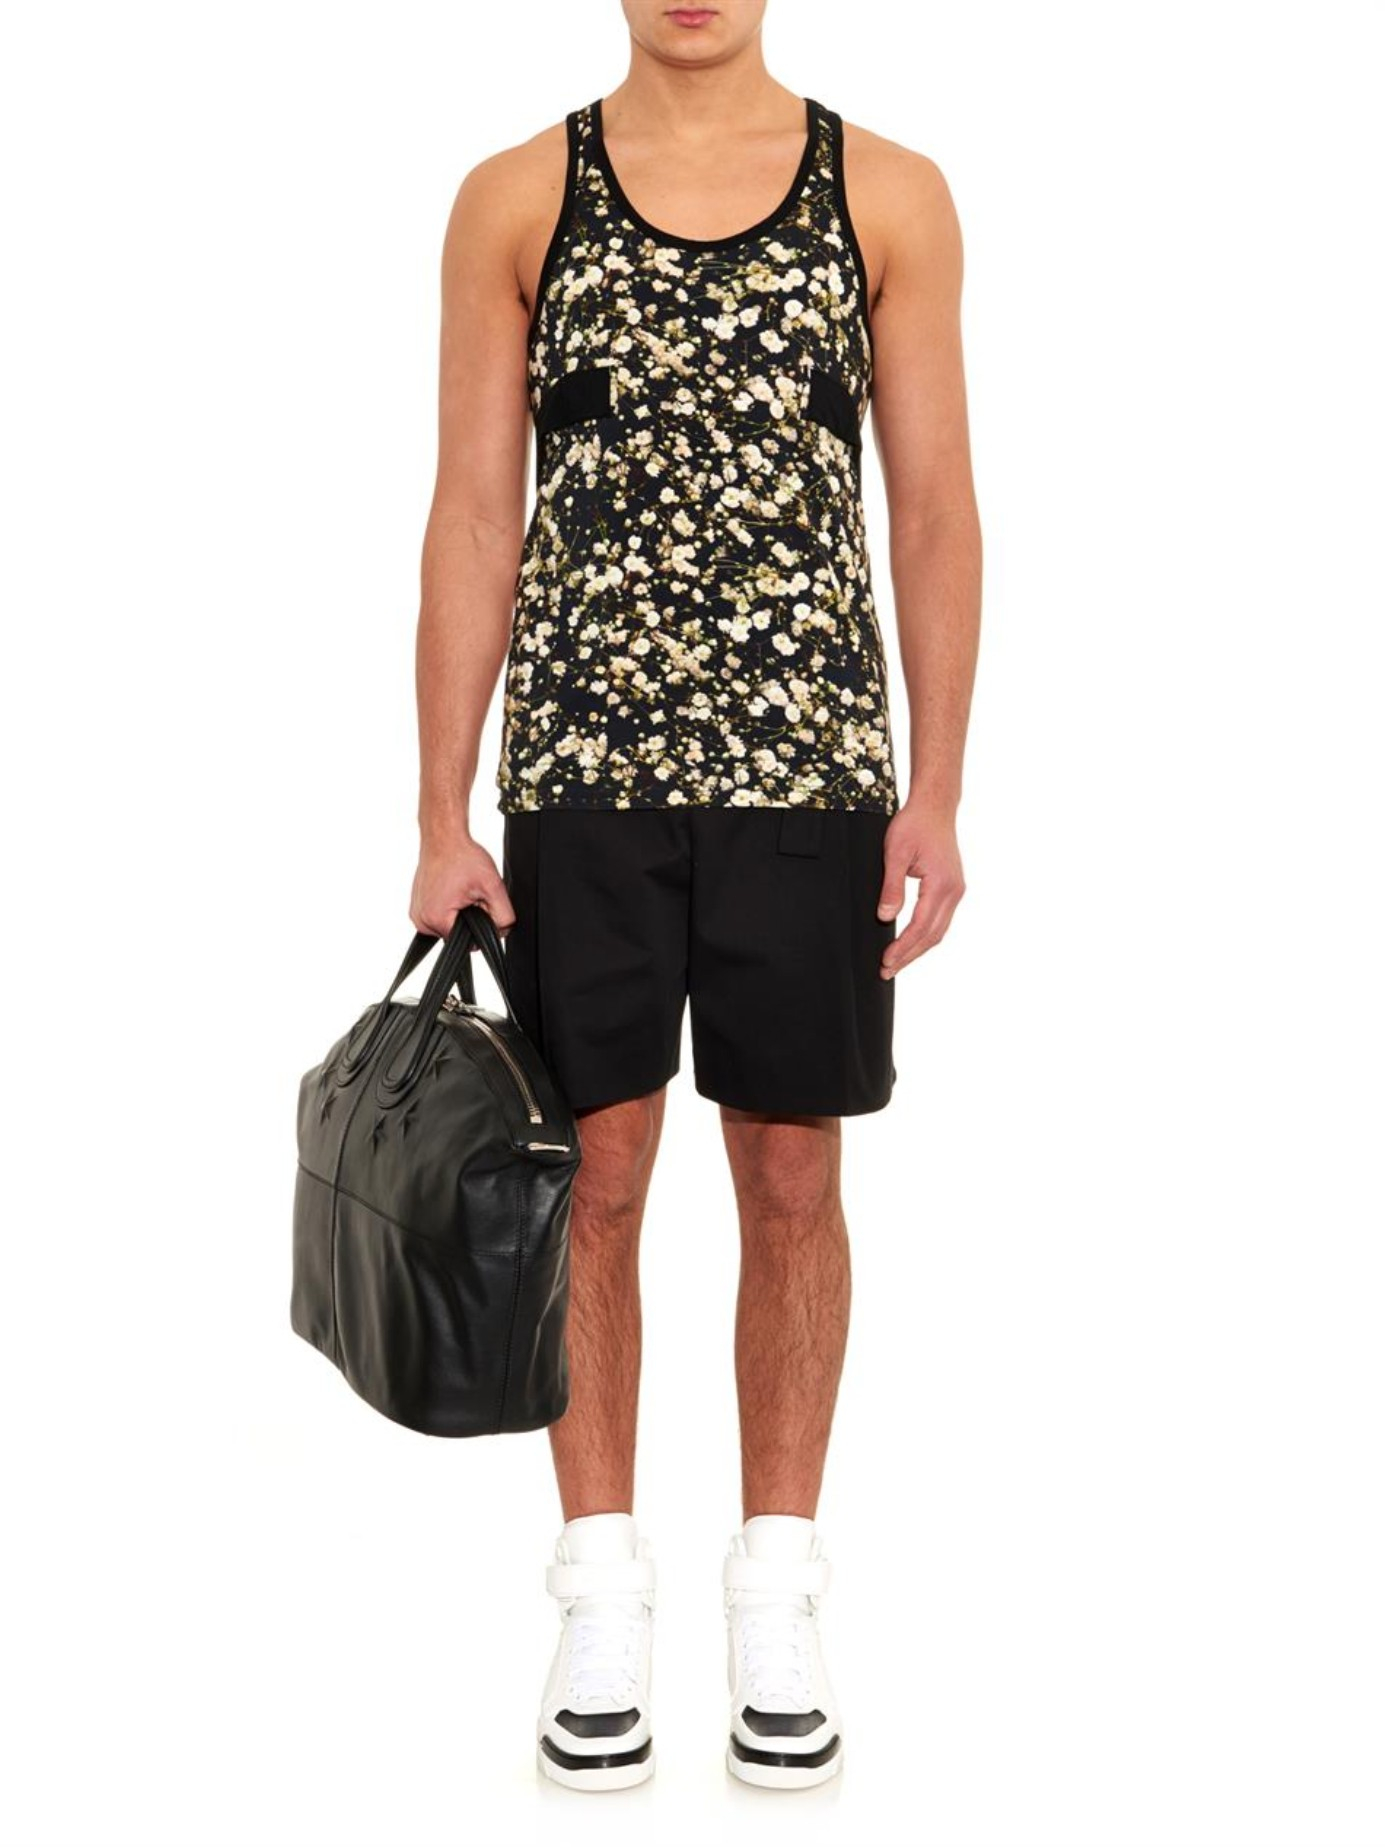 345e2c22bad9a Lyst - Givenchy Floral-Print Jersey Tank Top in Black for Men